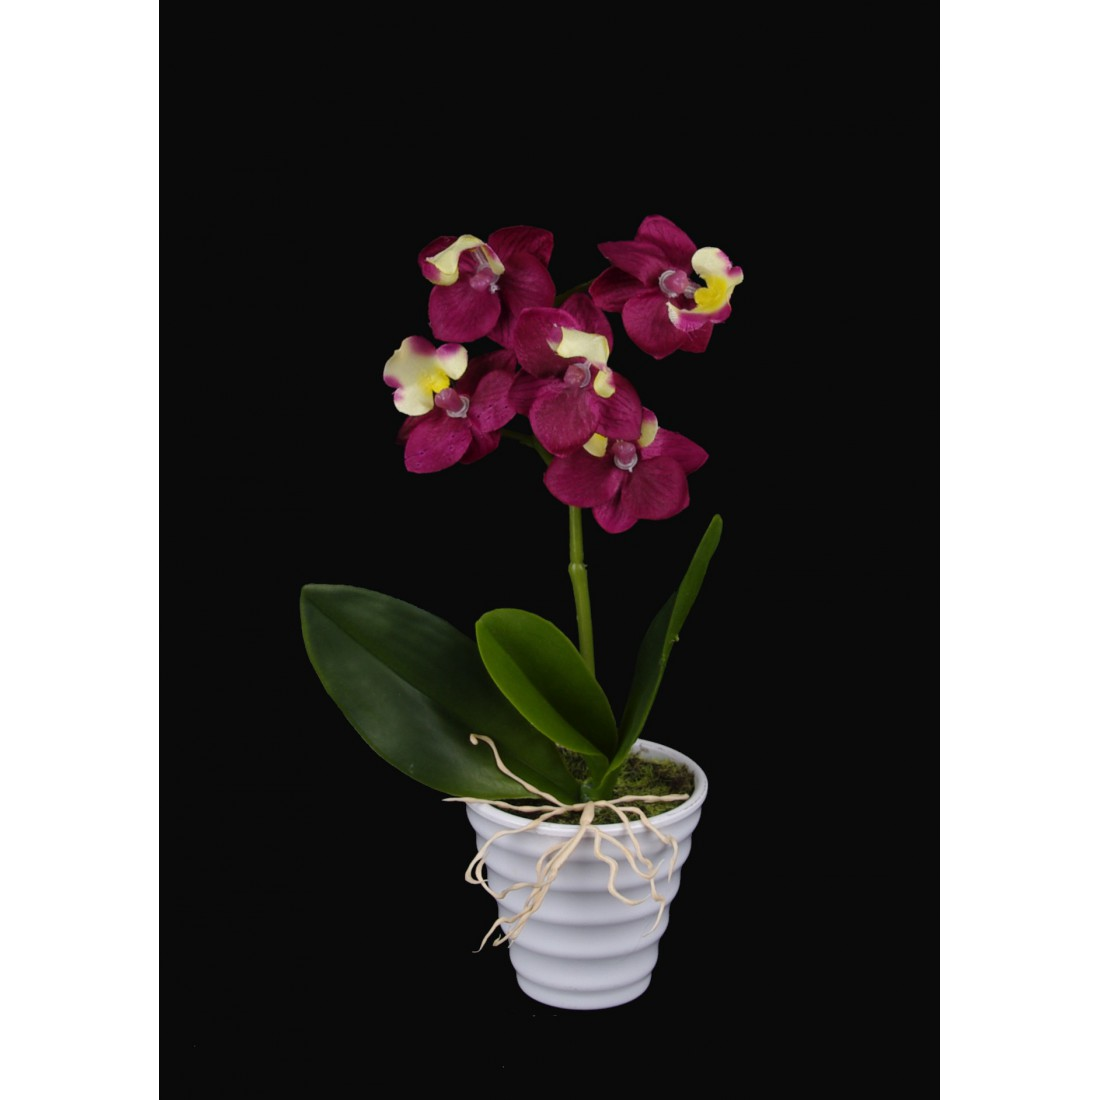 phalaenopsis orchidee artificielle 20 cm en pot orchid es en pot ou en motte reflets nature lyon. Black Bedroom Furniture Sets. Home Design Ideas